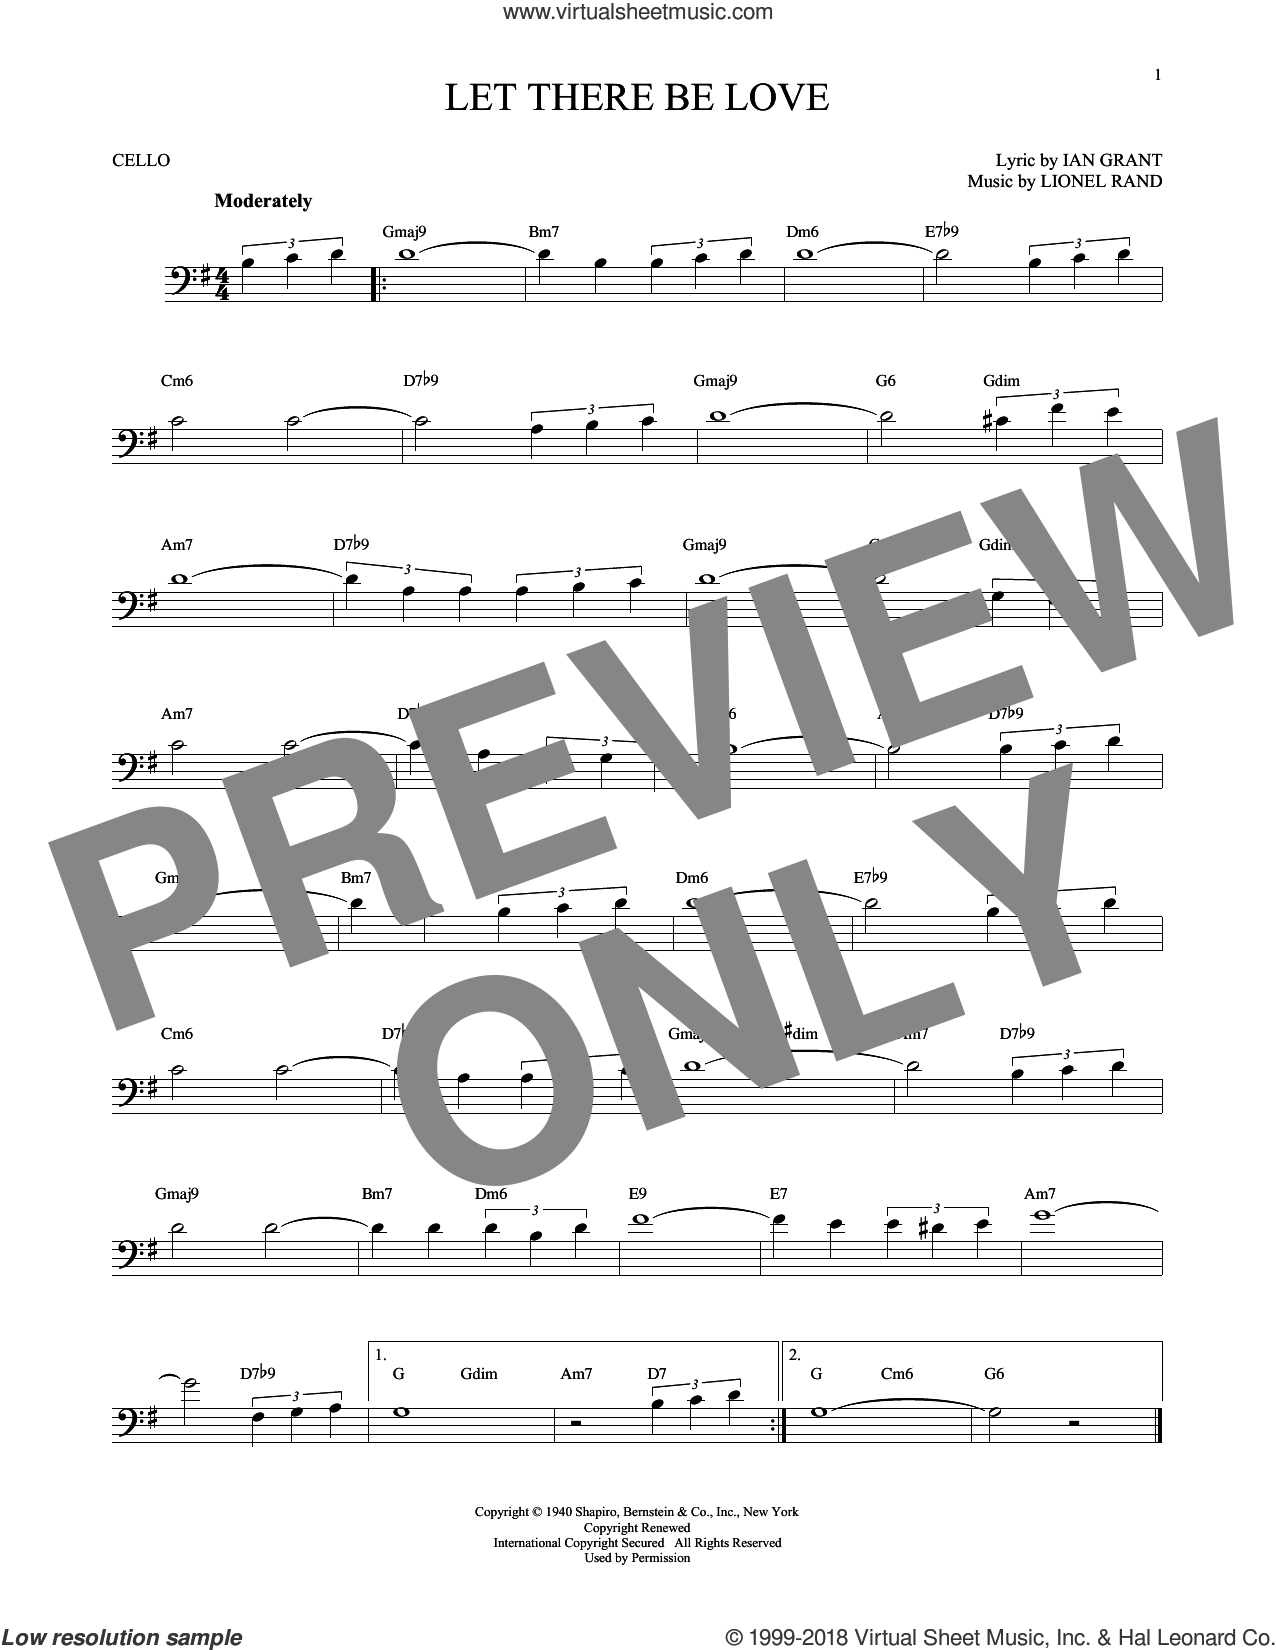 Let There Be Love sheet music for cello solo by Ian Grant and Lionel Rand. Score Image Preview.